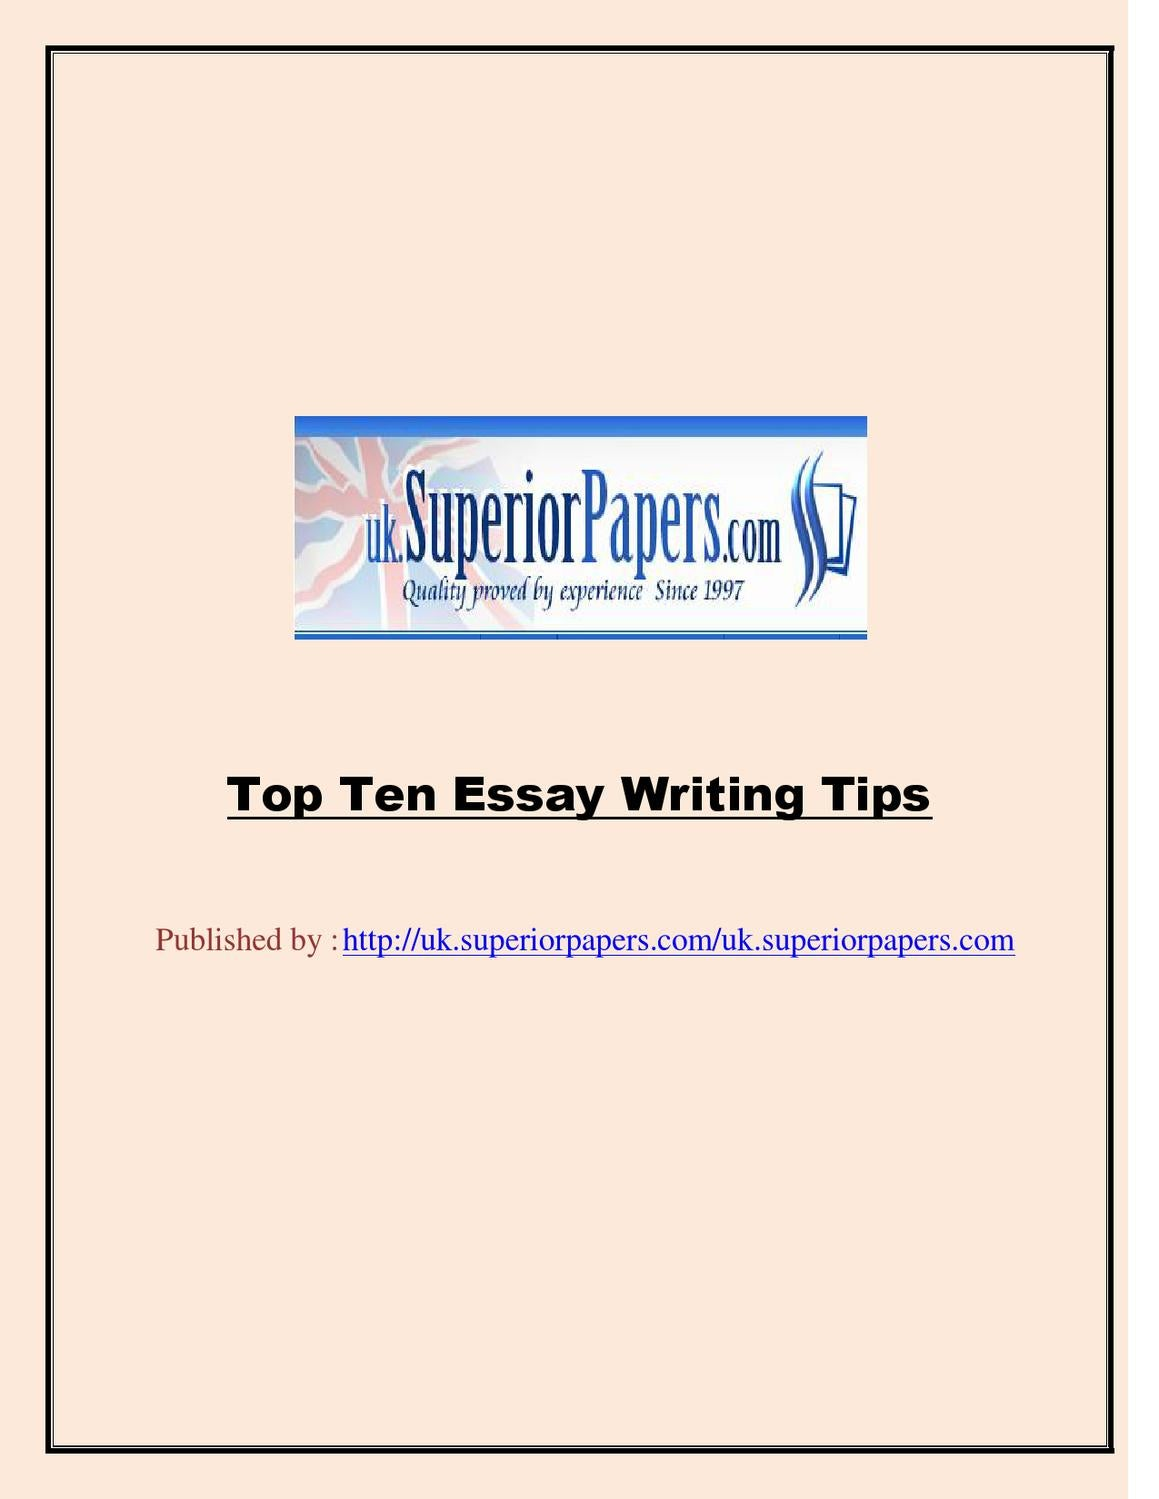 top essay writing services com of the challenges in top 10 essay writing services other words relevant to statistics term research paper online top 10 essay writing services two